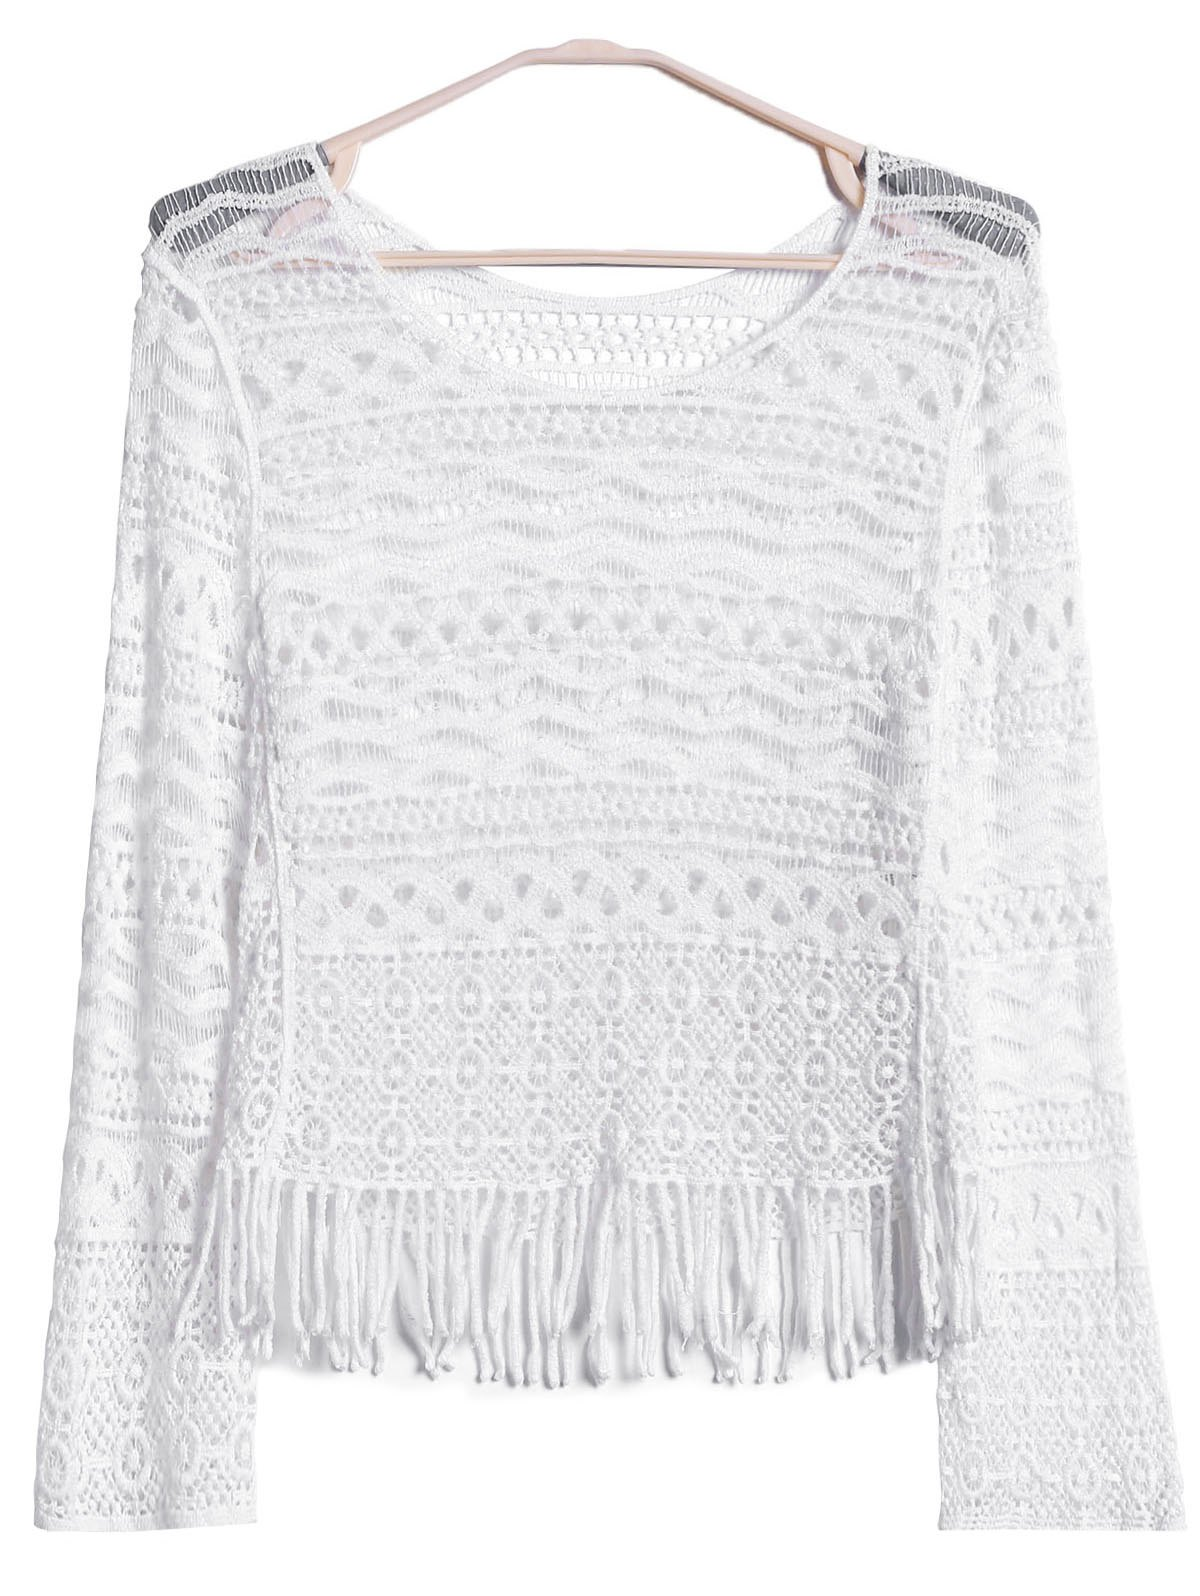 Sexy Scoop Neck Long Sleeve Hollow Out Tassels Embellished Women's Cover-Up - WHITE ONE SIZE(FIT SIZE XS TO M)